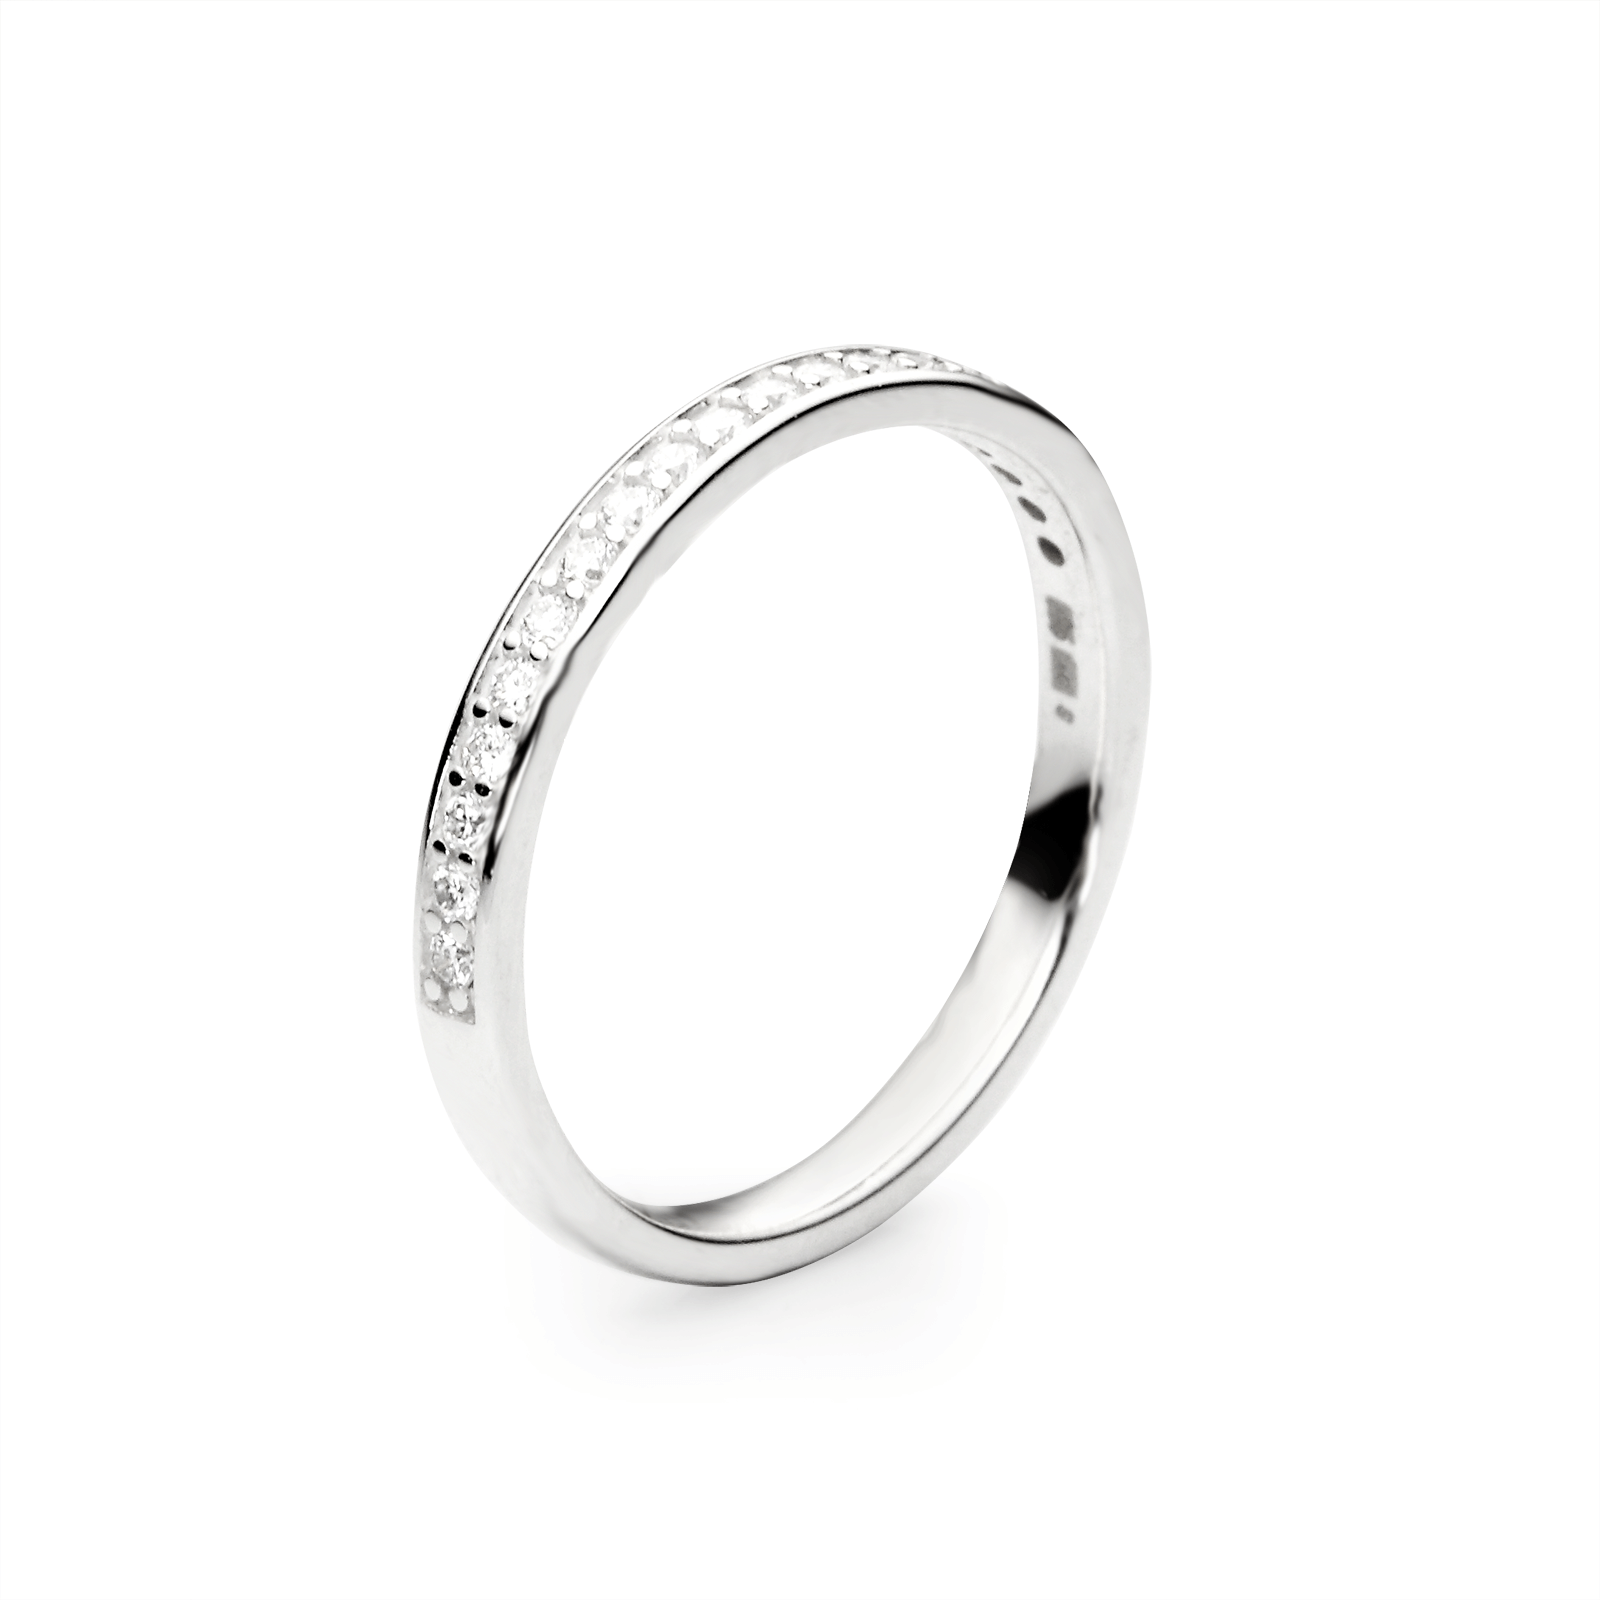 Diamant 0,01 ct - 19 x